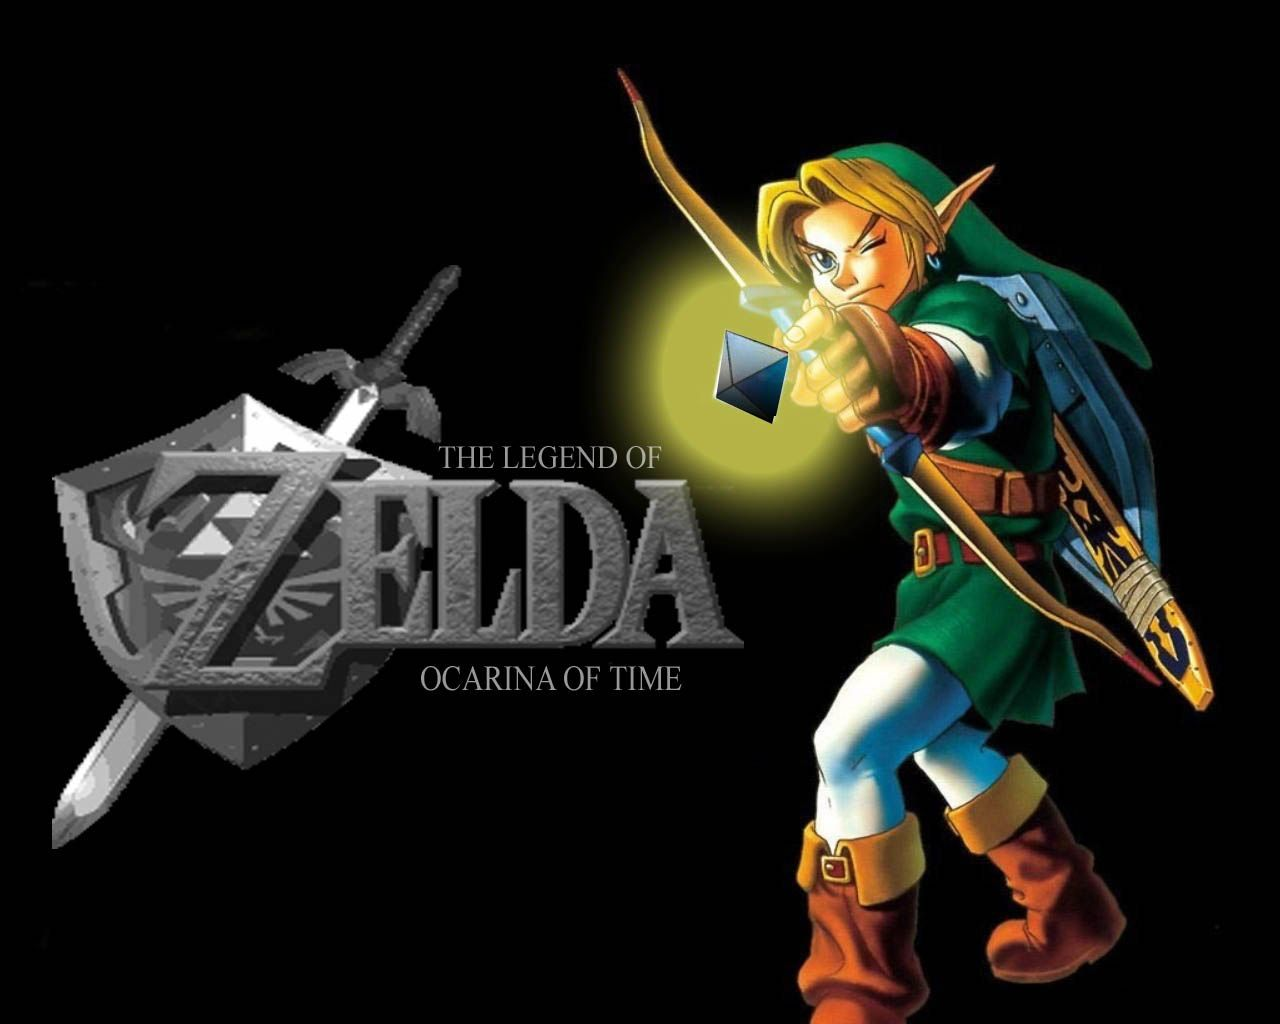 Top HD Legend Of Zelda Ocarina Time Wallpaper Games 1280x1024 Wallpapers 27